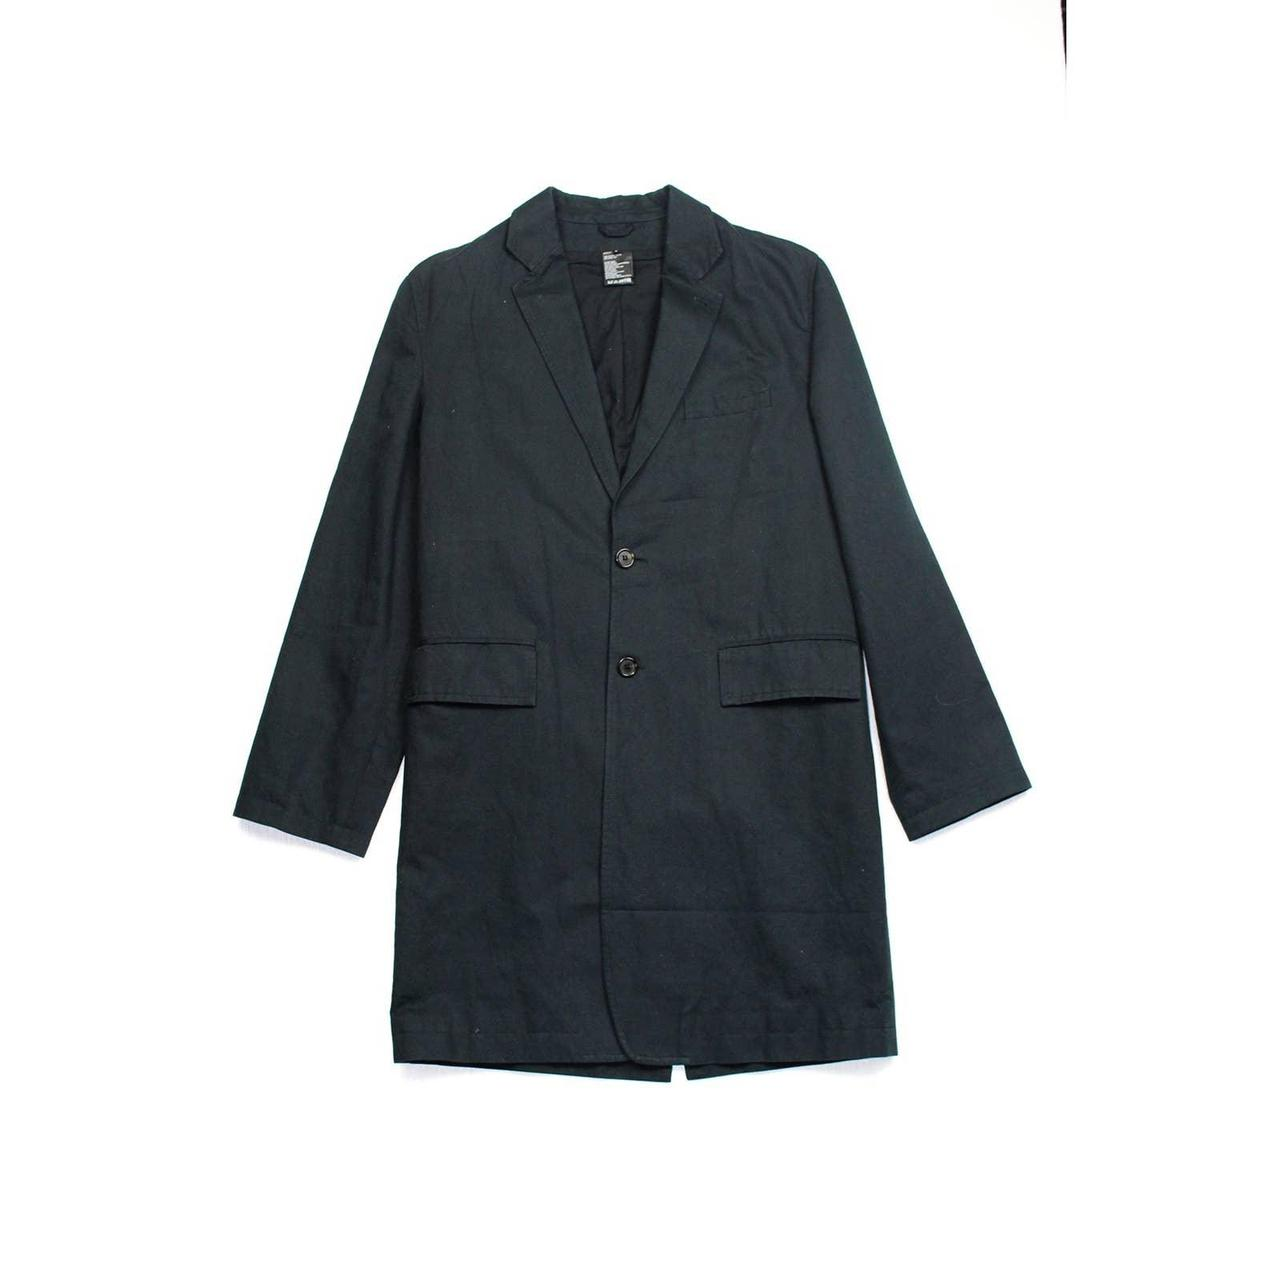 Product Image 1 - From Ann Demeulemeester comes the